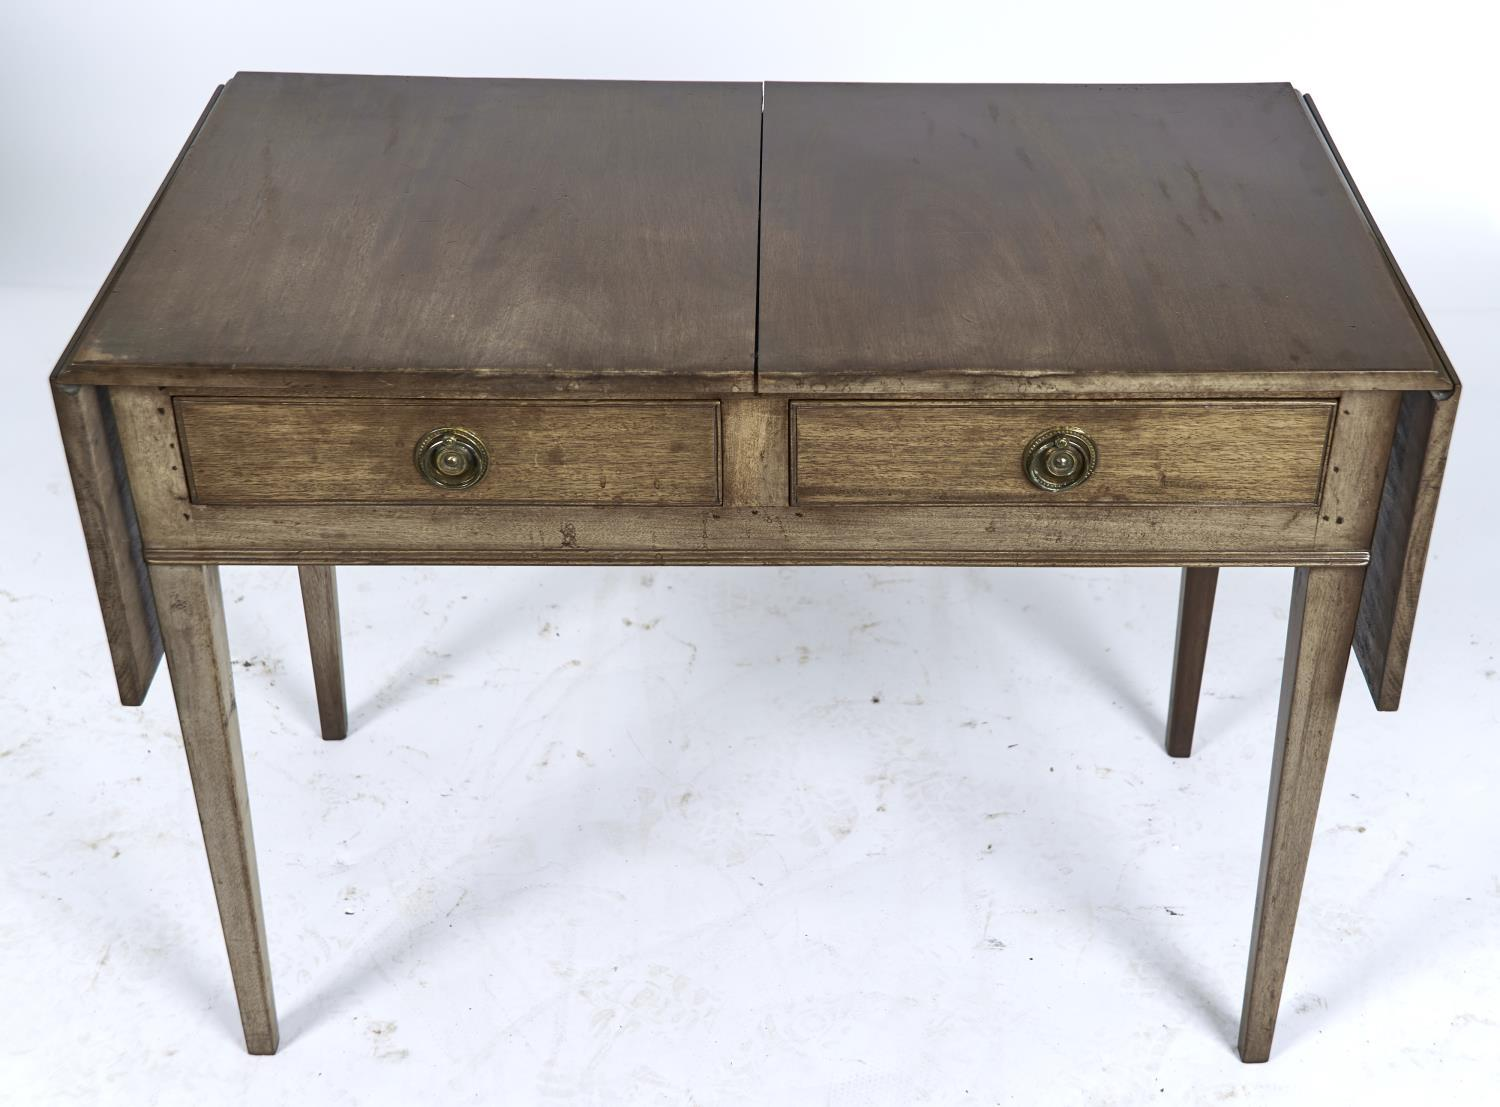 A MAHOGANY TWO DRAWER TABLE, THE RECTANGULAR TOP WITH PAIR OF FOLDING FLAPS, SCRATCH MOULDED DRAWERS - Image 2 of 2